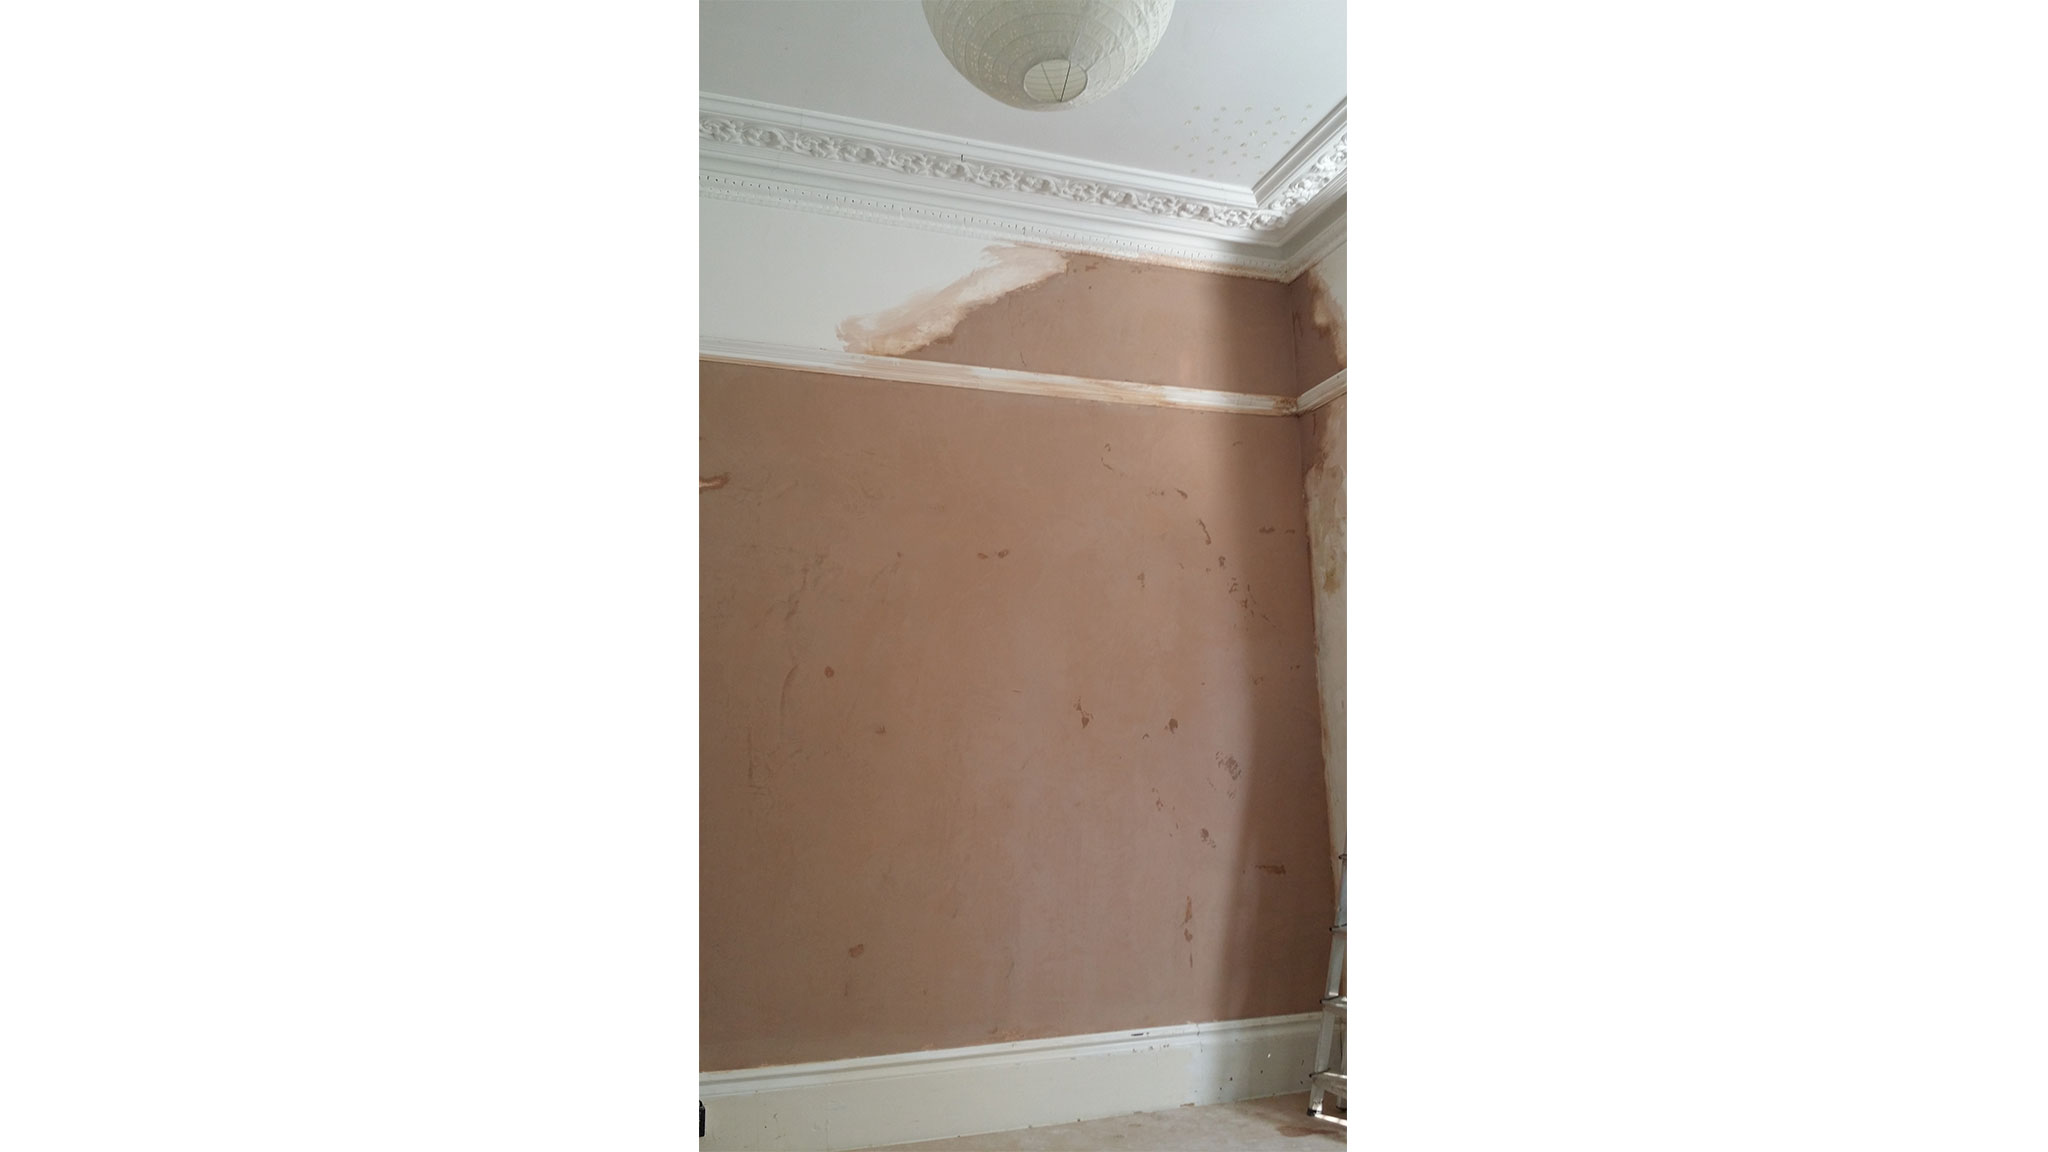 Plastering-after-3